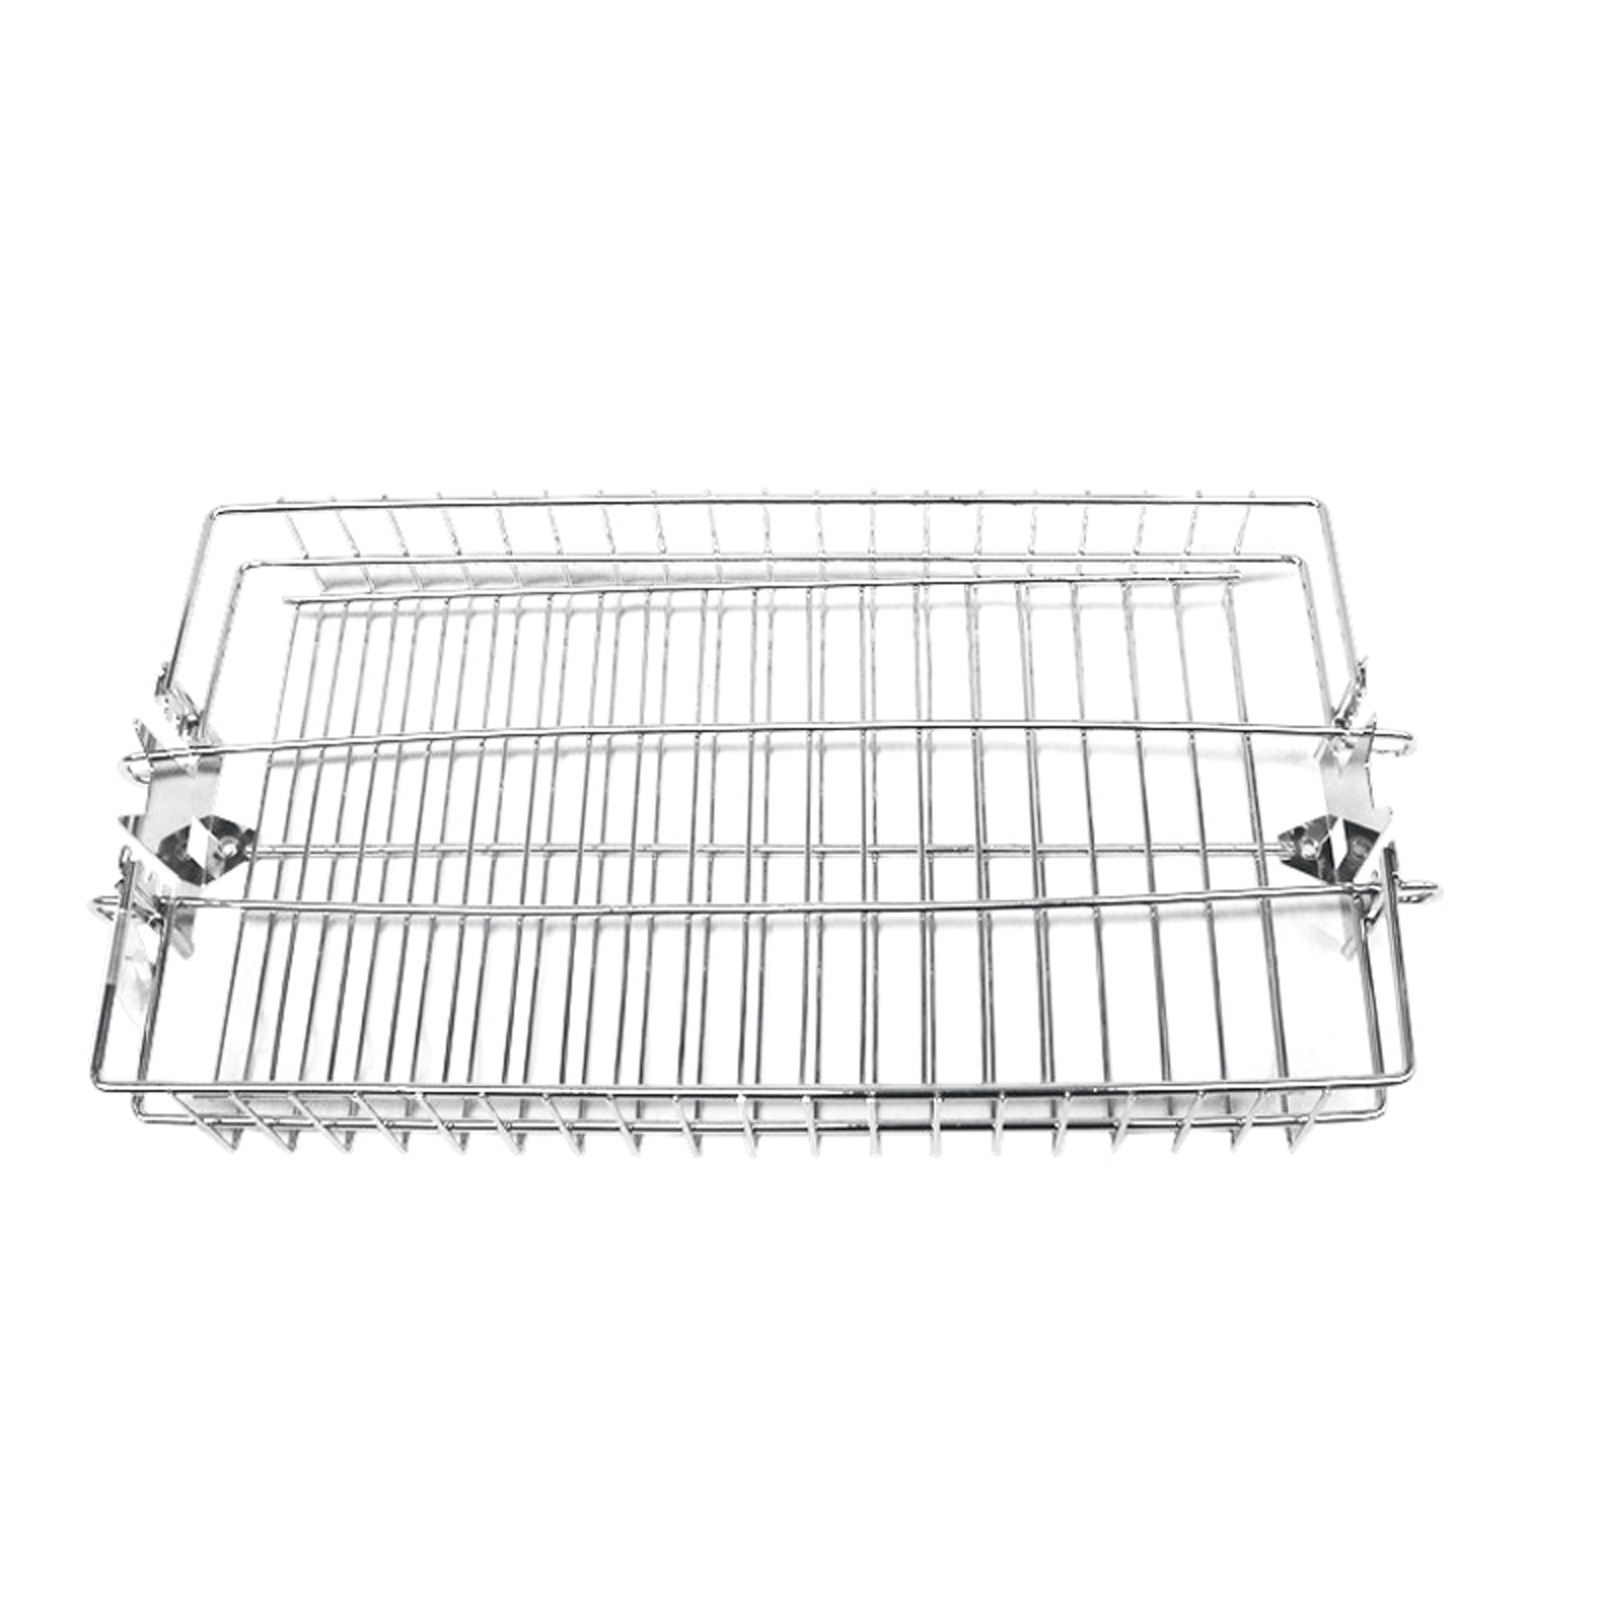 New Beefeater Rotisserie Spit Basket